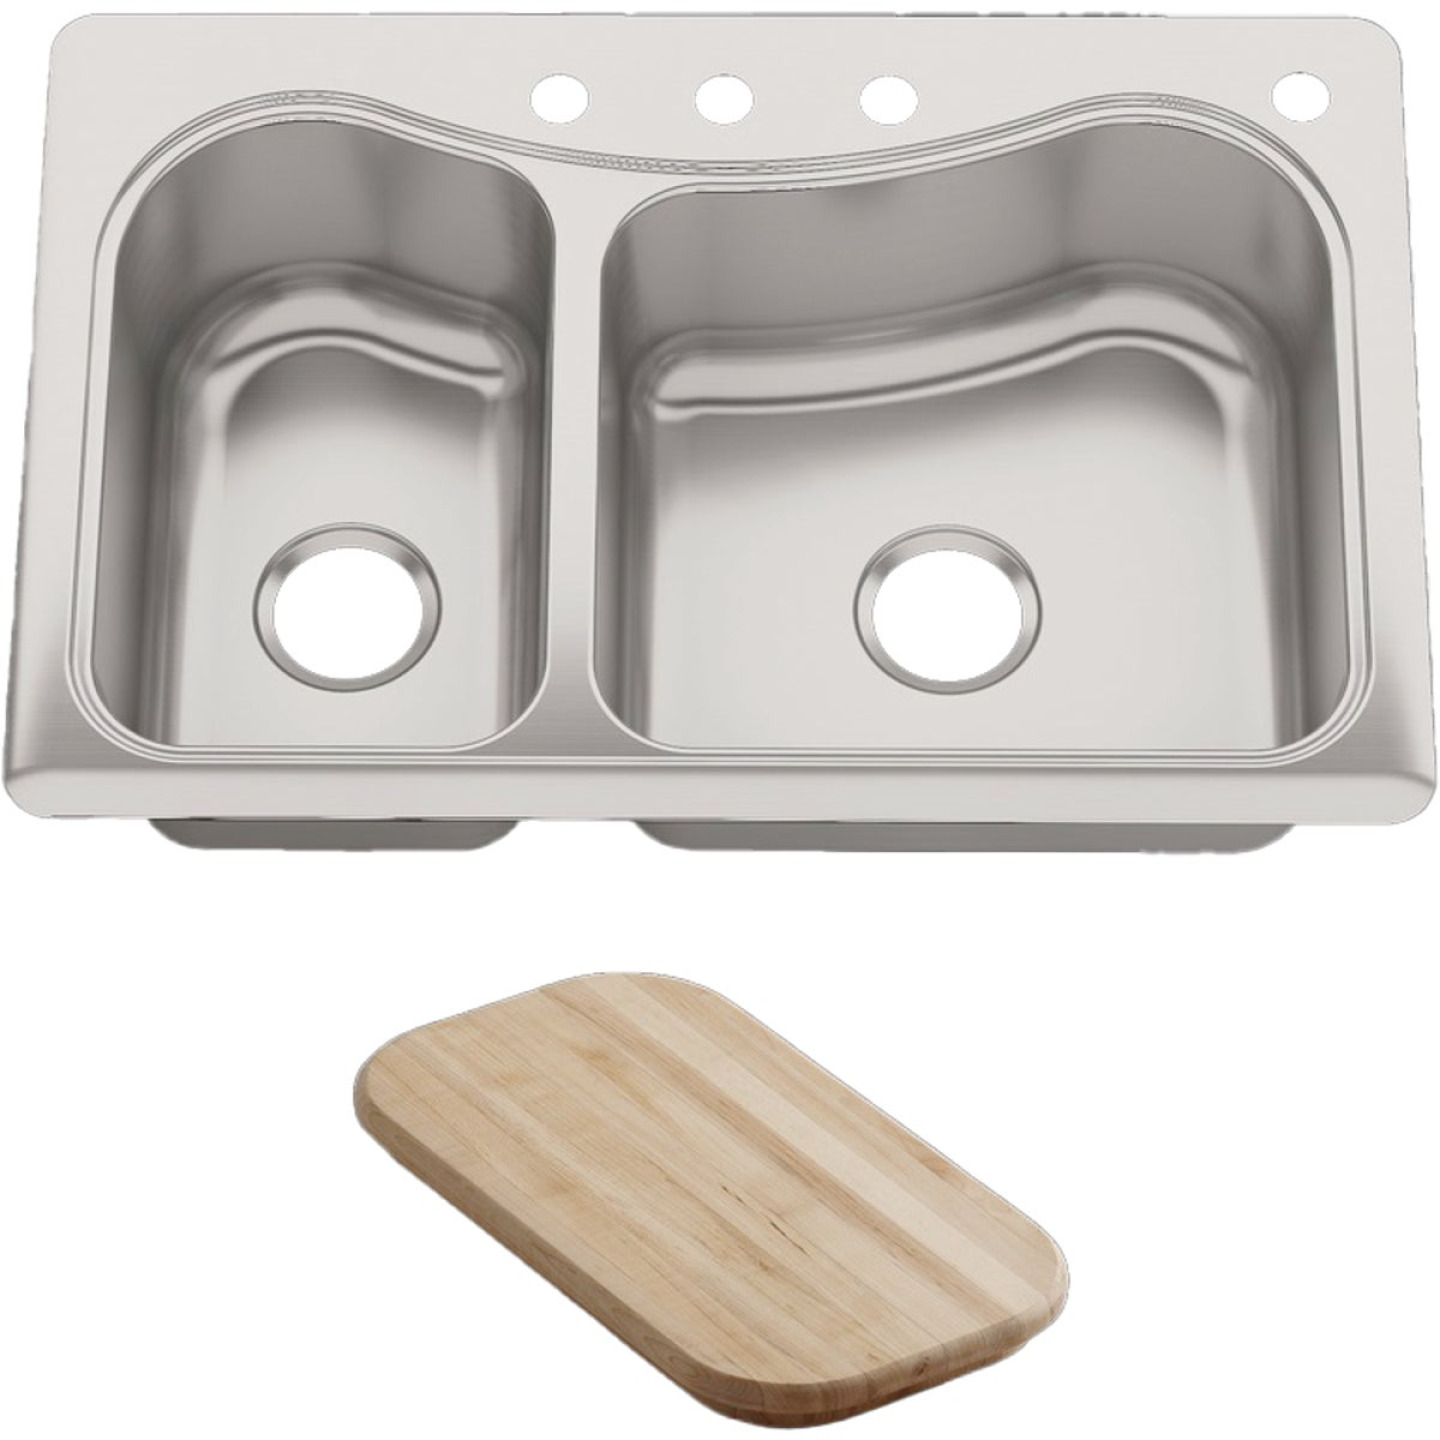 Kohler Staccato Double Bowl 33 In. x 22 In. x 8 In. Deep Stainless Steel Kitchen Sink w/Cutting Board Image 1